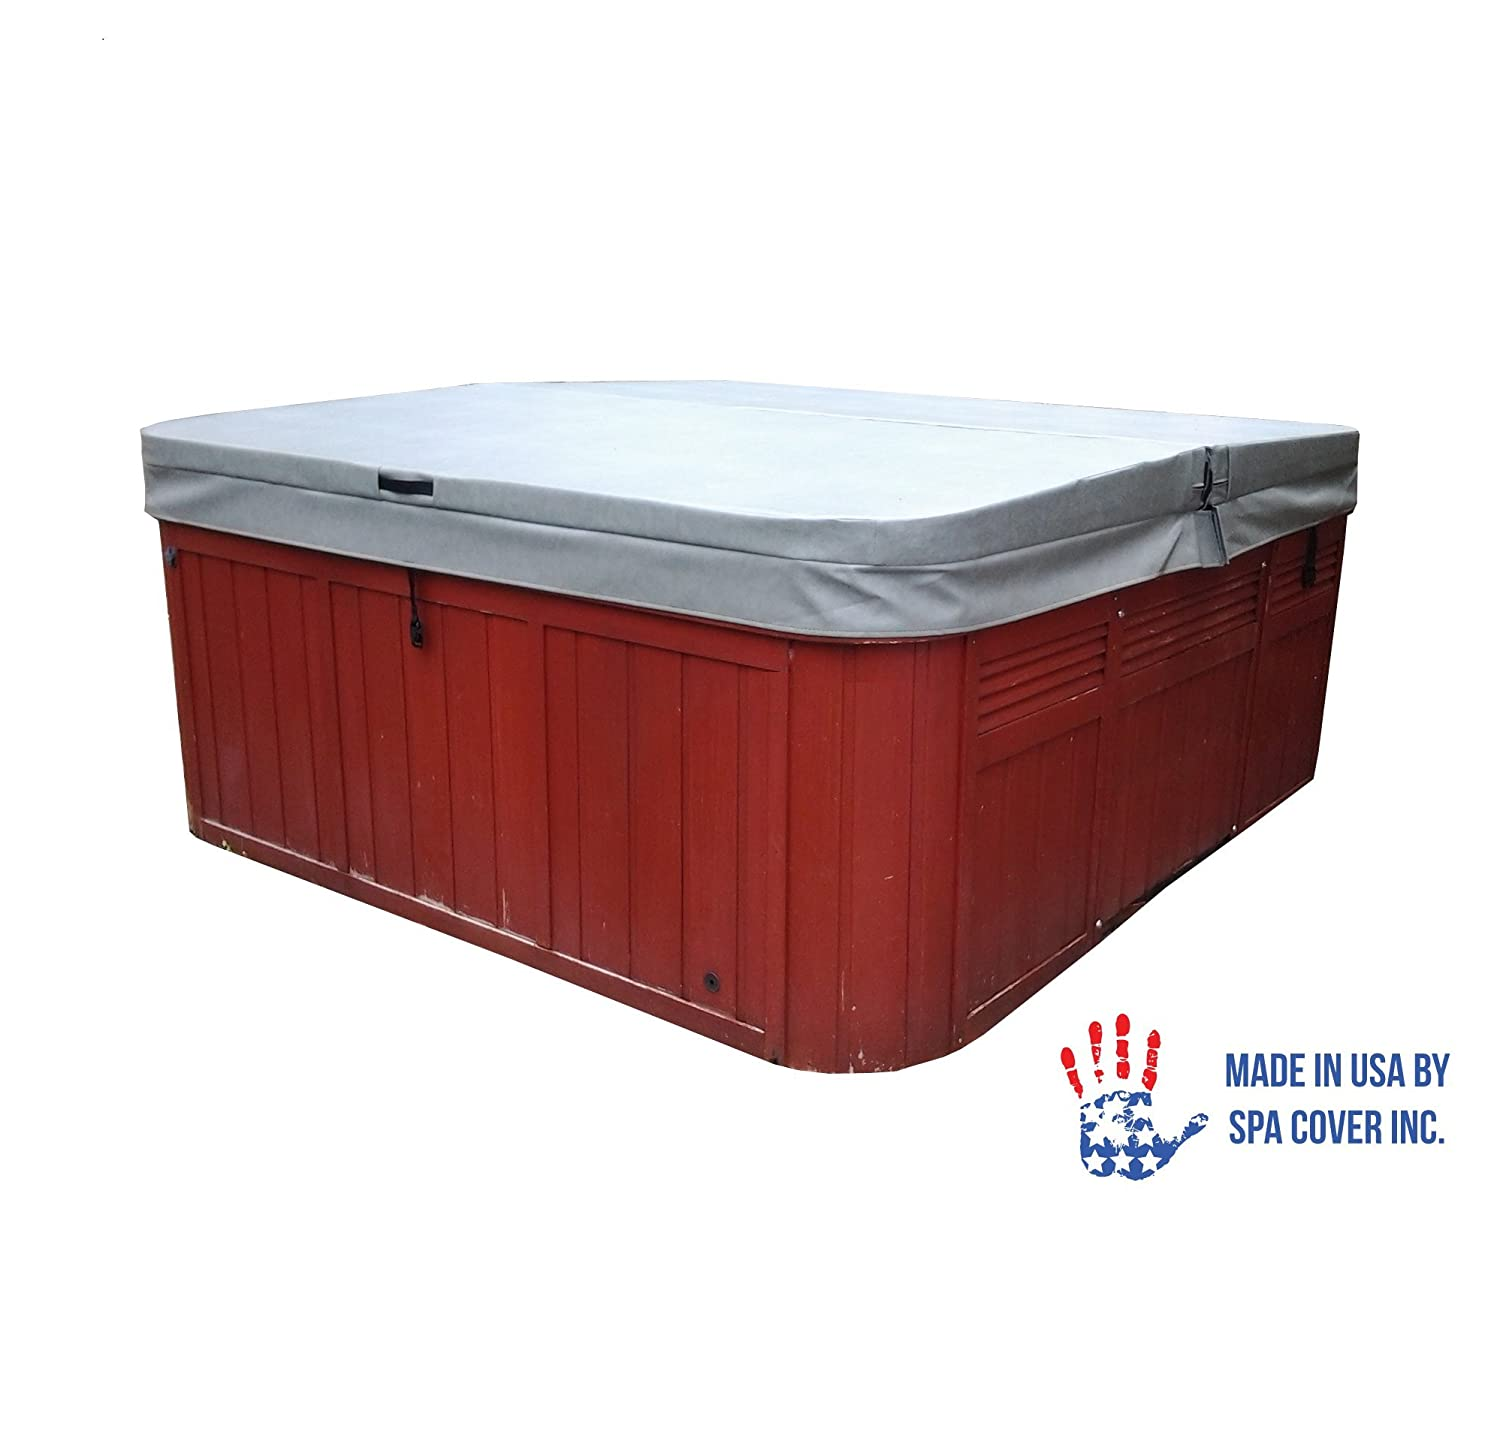 Amazon.com : BeyondNice Hot Tub Cover and Spa Cover, 6-inch ...